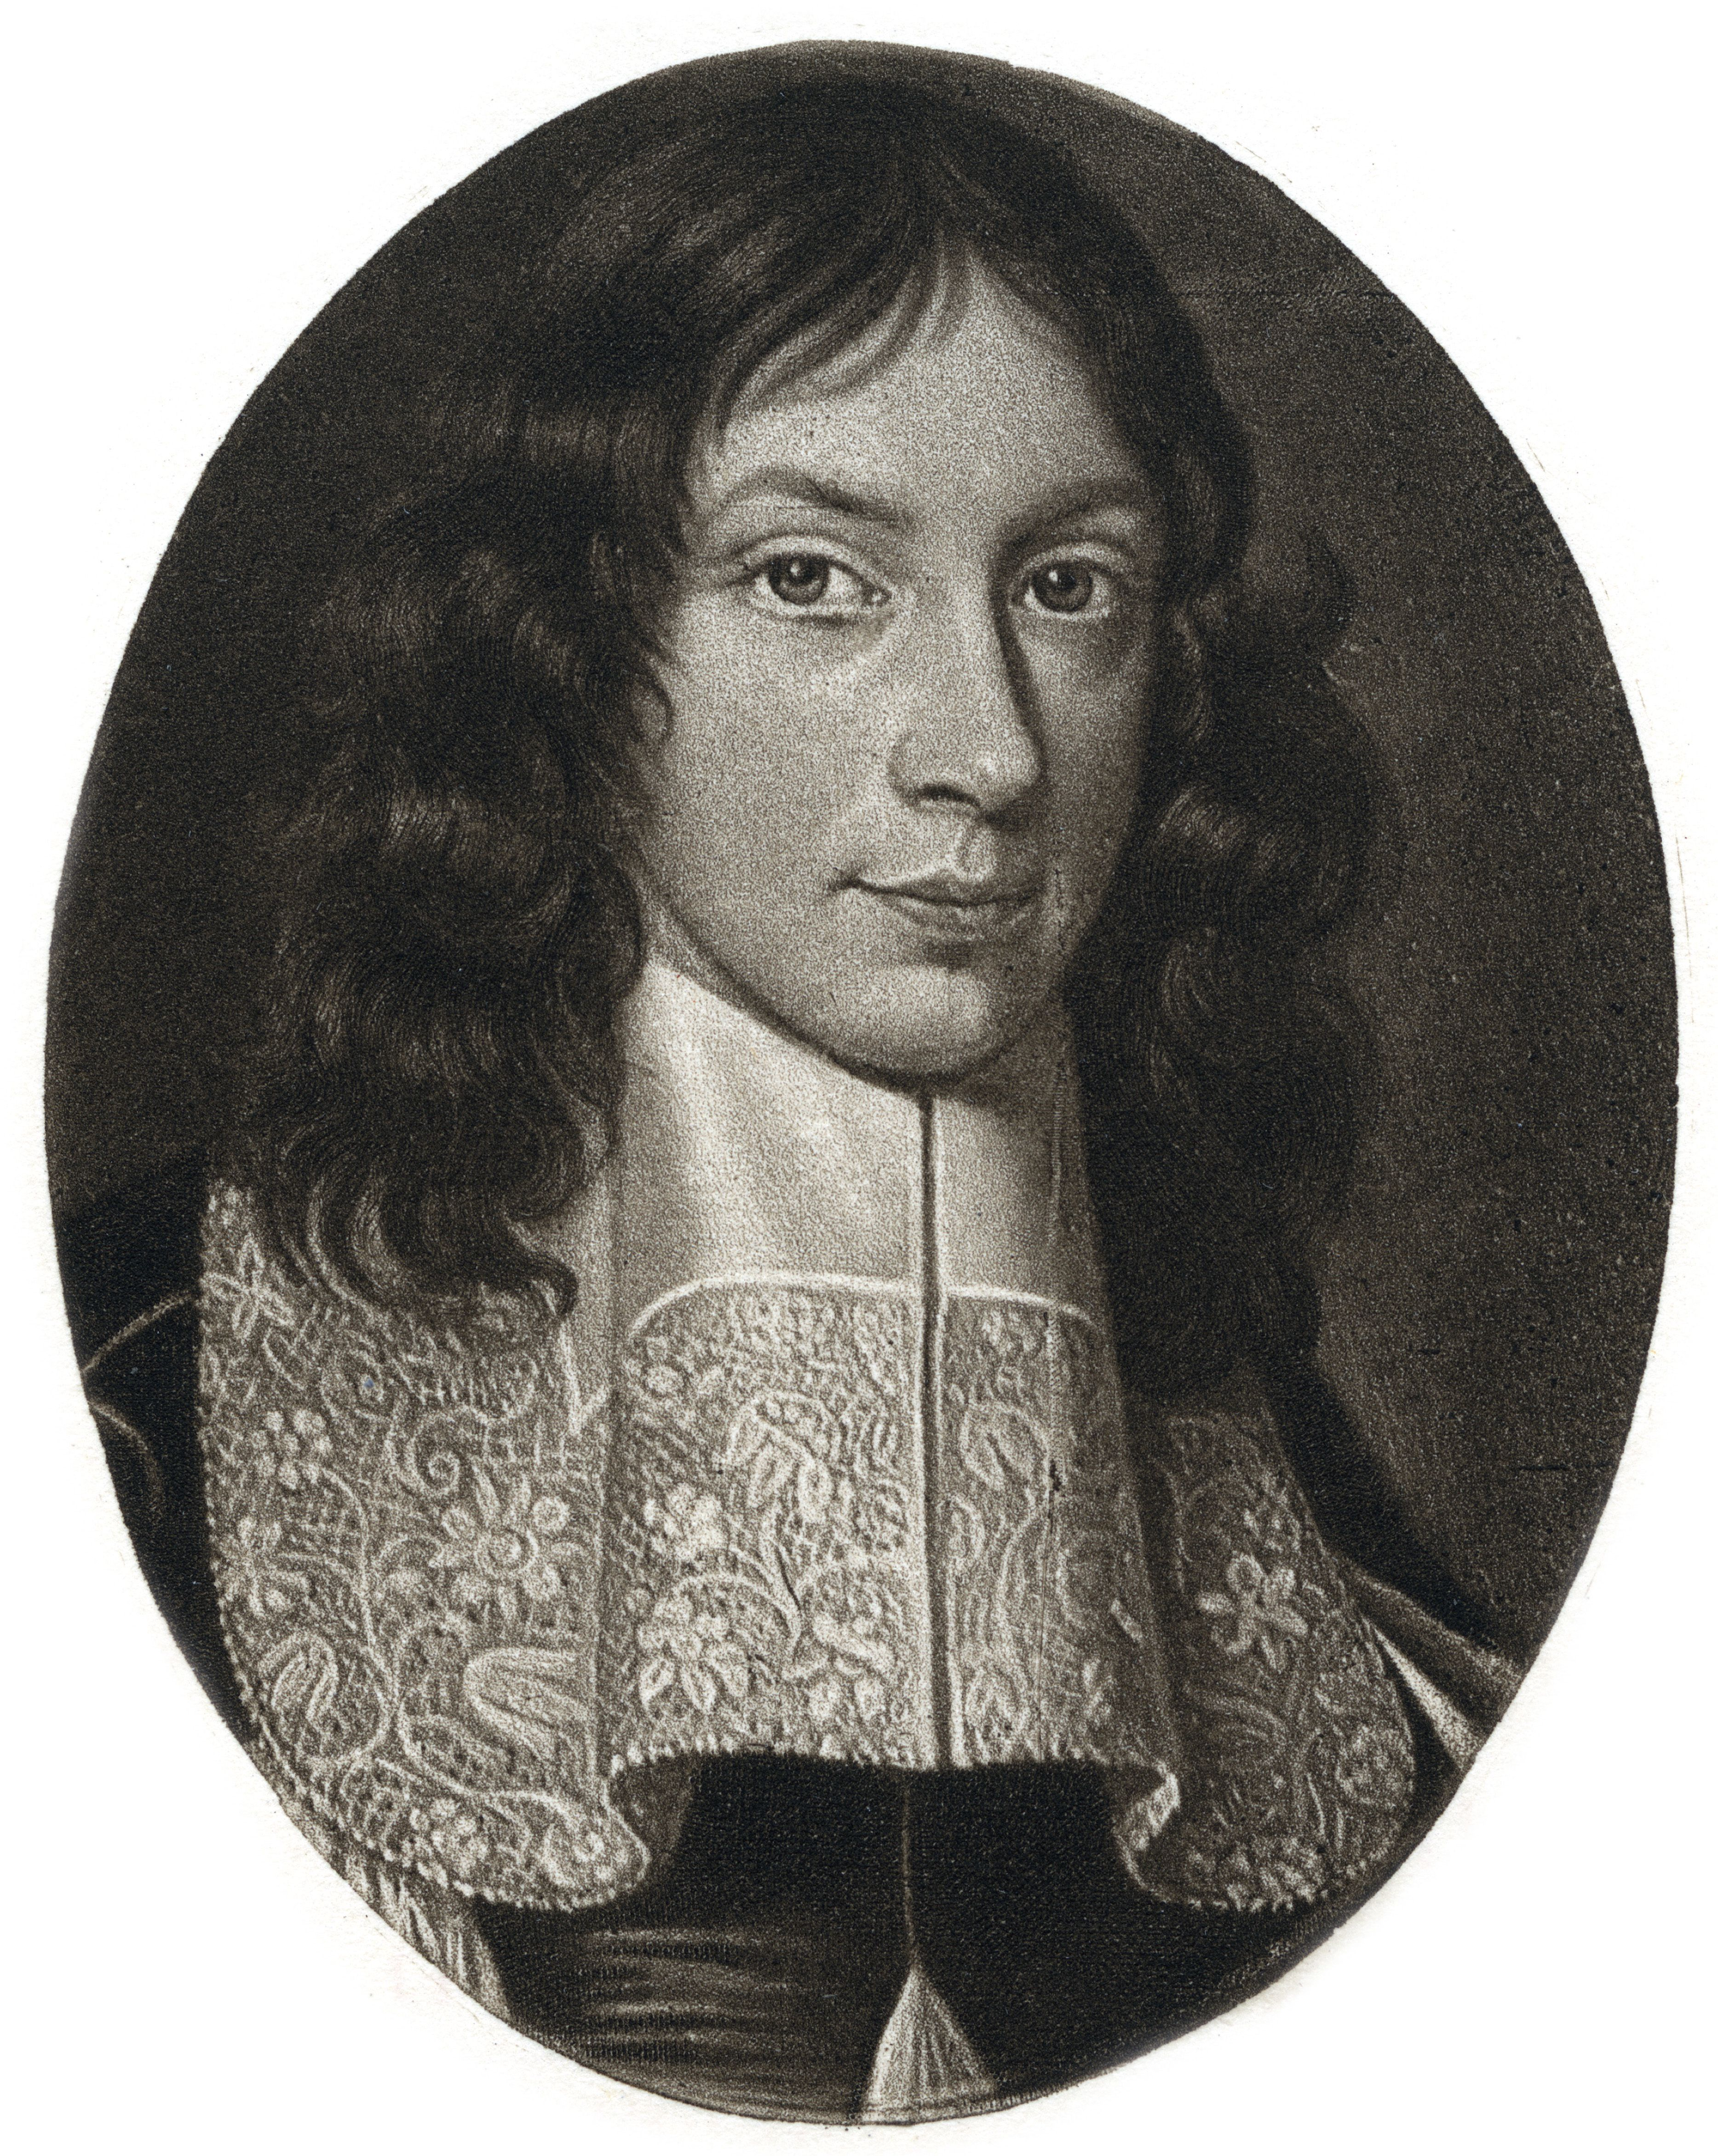 john donne was born a and later converted to